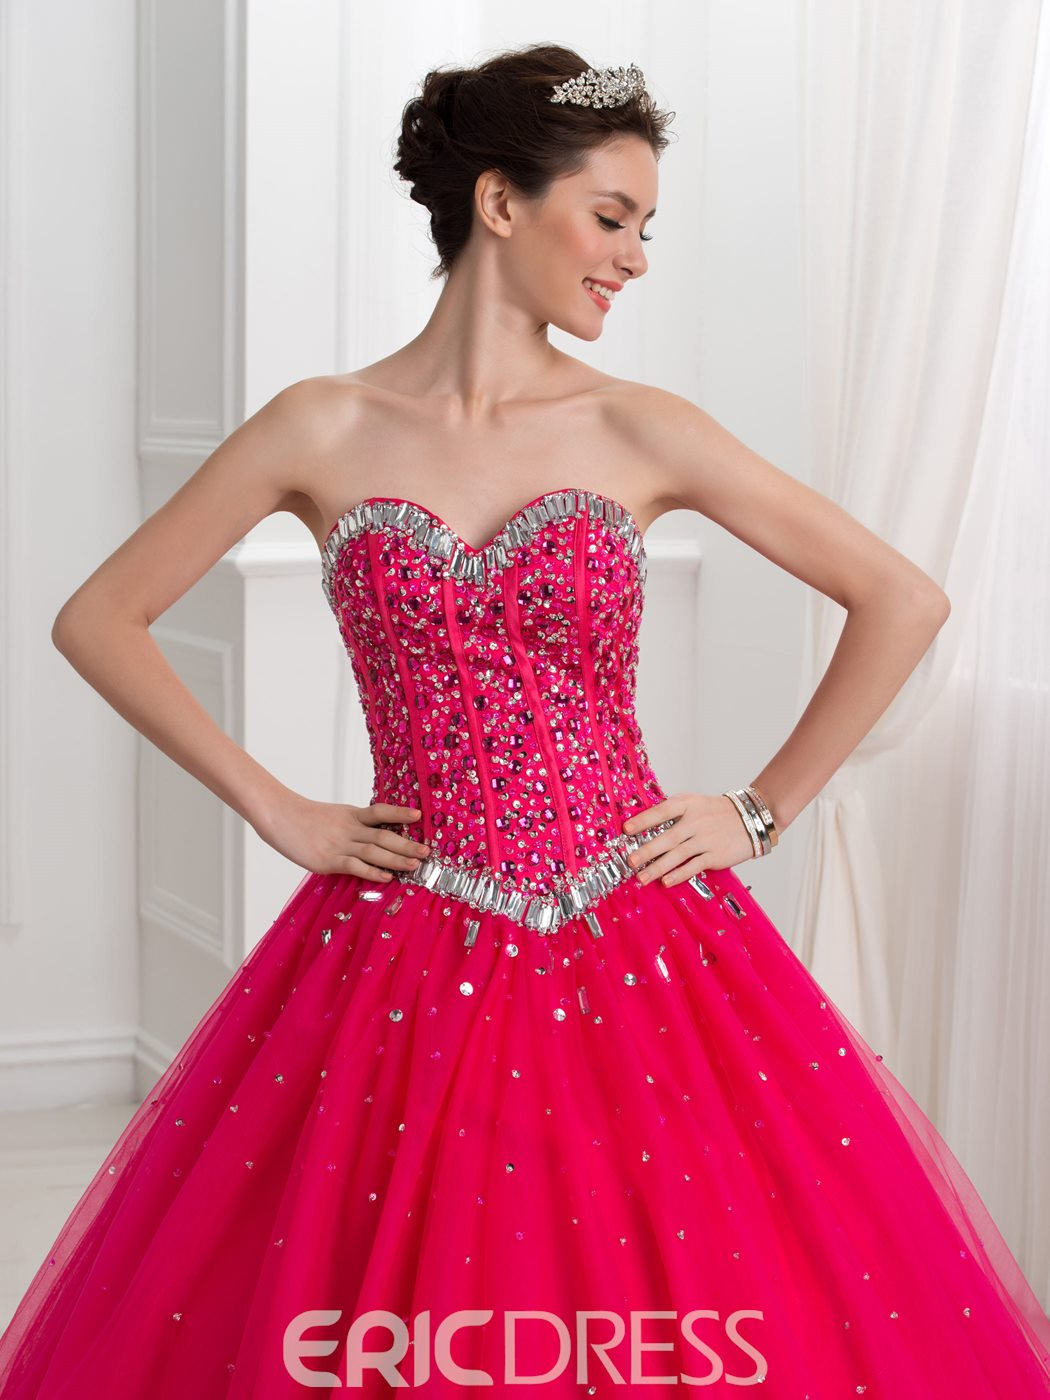 Ericdress Sweetheart Beading Sequins Ball Gown Quinceanera Dress